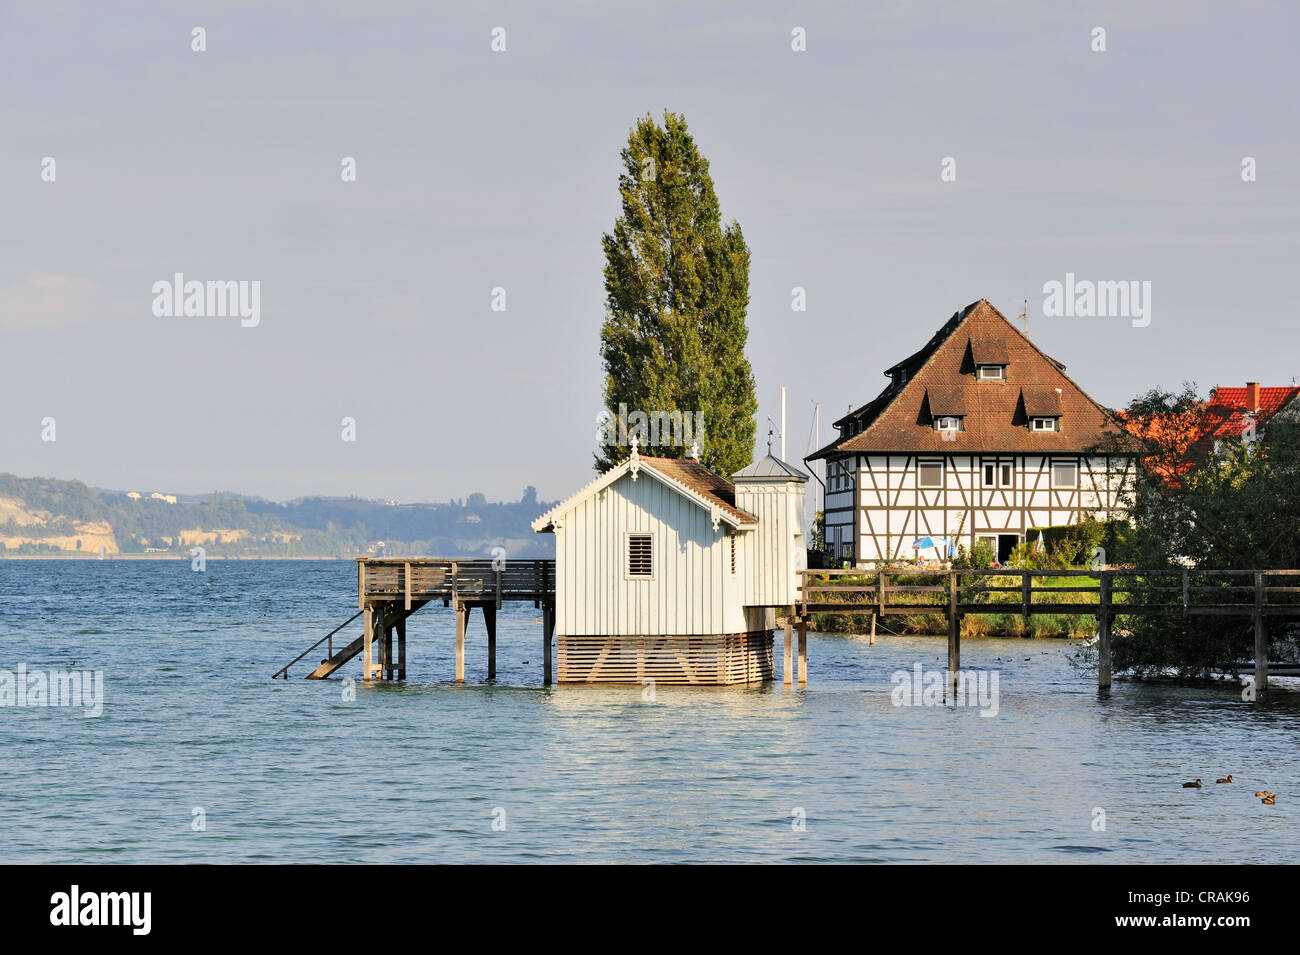 Historic bathhouse on the bank of Bodman, County Konstanz, Baden-Wuerttemberg, Germany, Europe - Stock Image